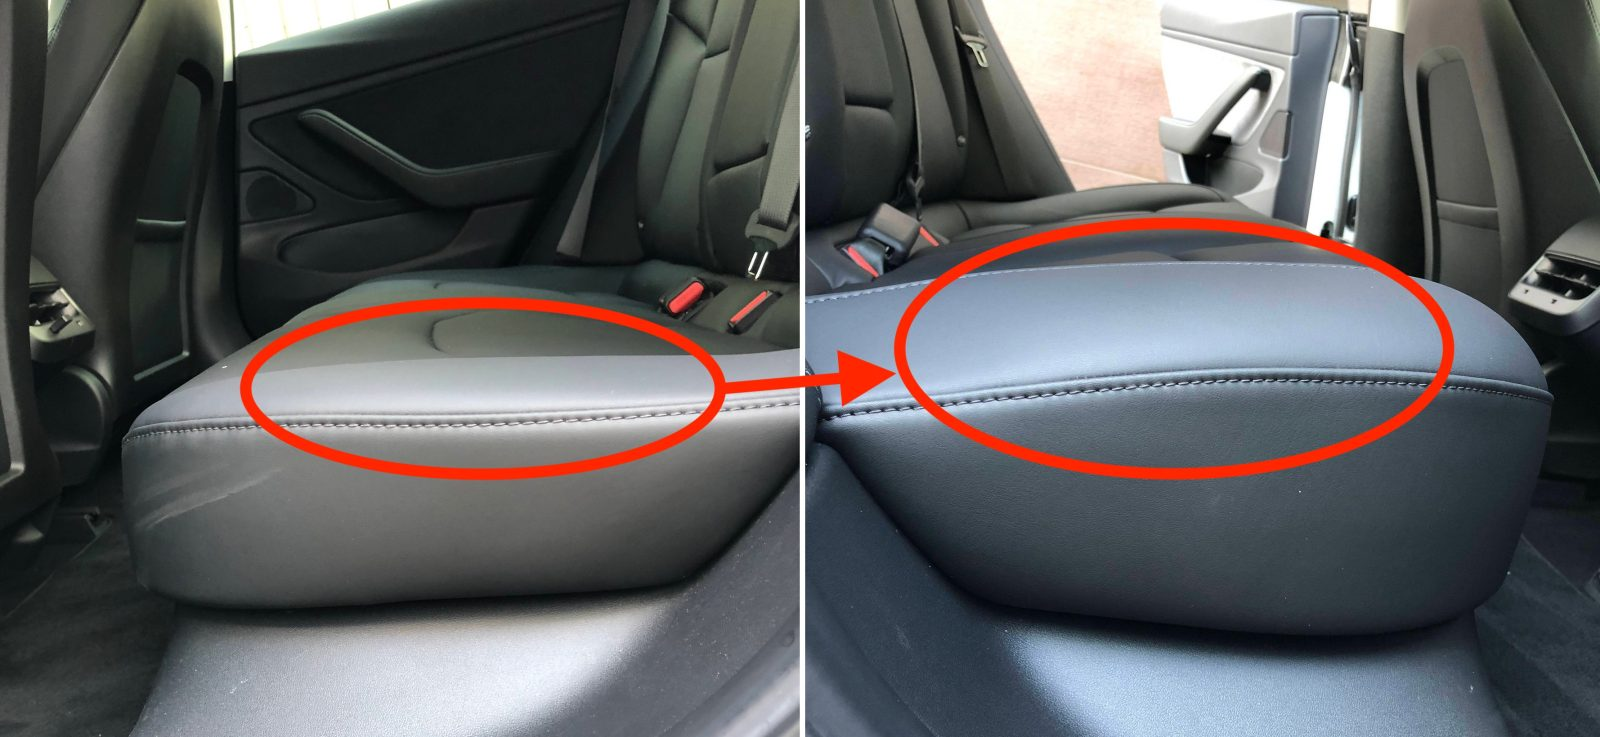 Uber Car Seat >> First look at Tesla Model 3's new backseat - Electrek